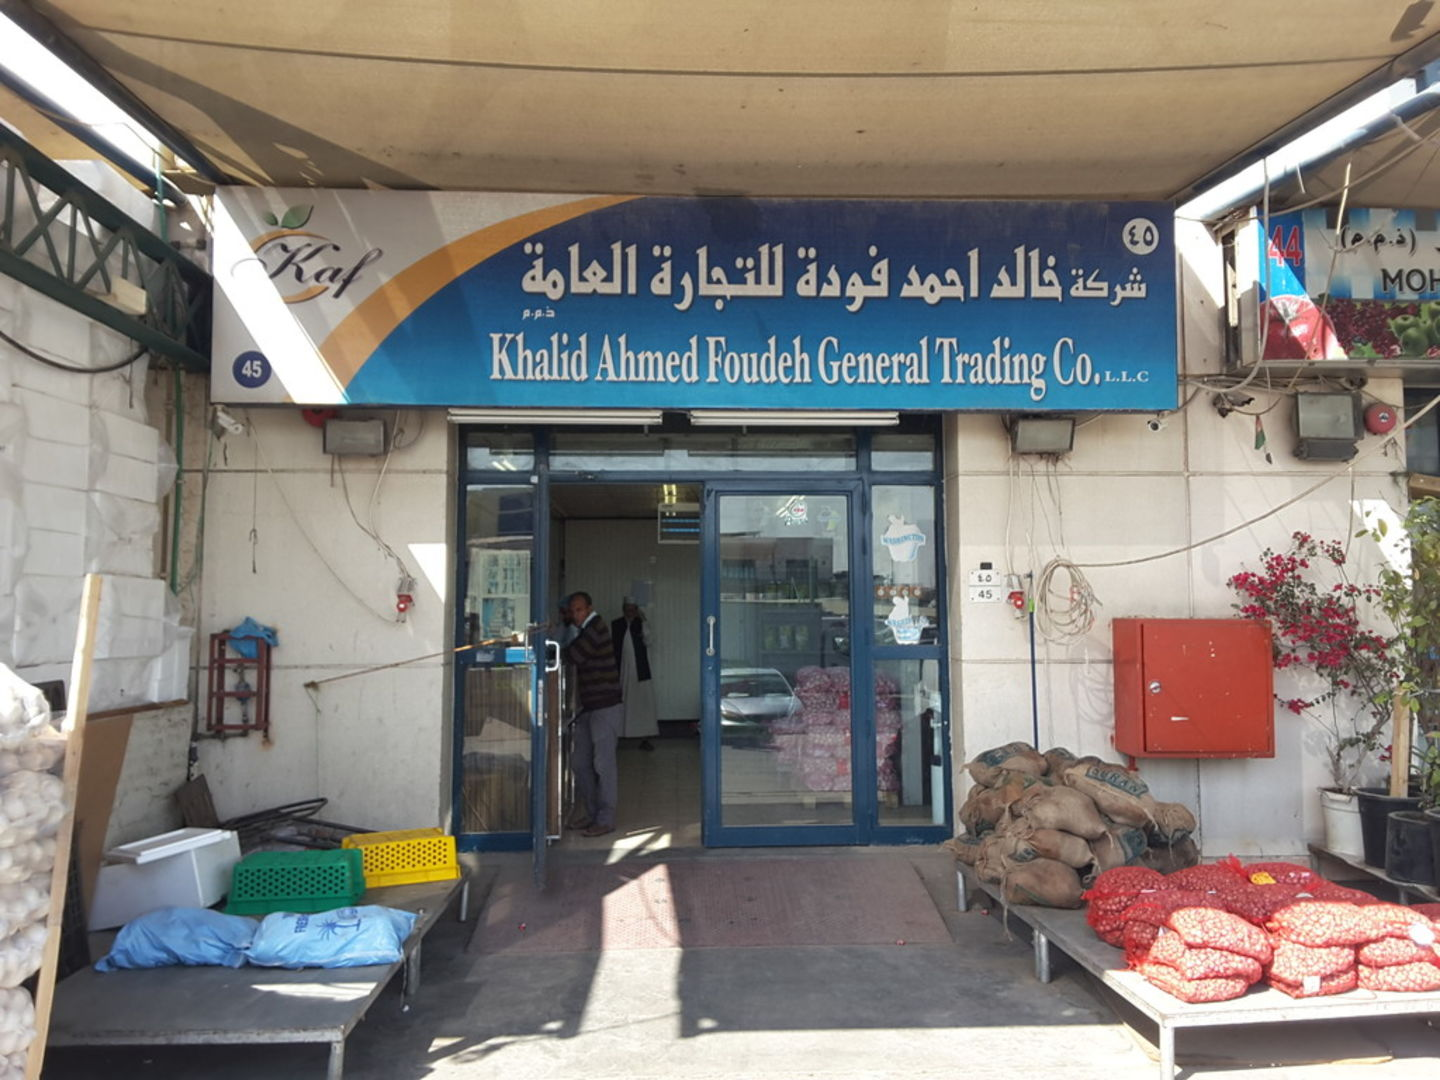 HiDubai-business-khalid-ahmed-foudeh-general-trading-co-food-beverage-supermarkets-hypermarkets-grocery-stores-ras-al-khor-industrial-3-dubai-2